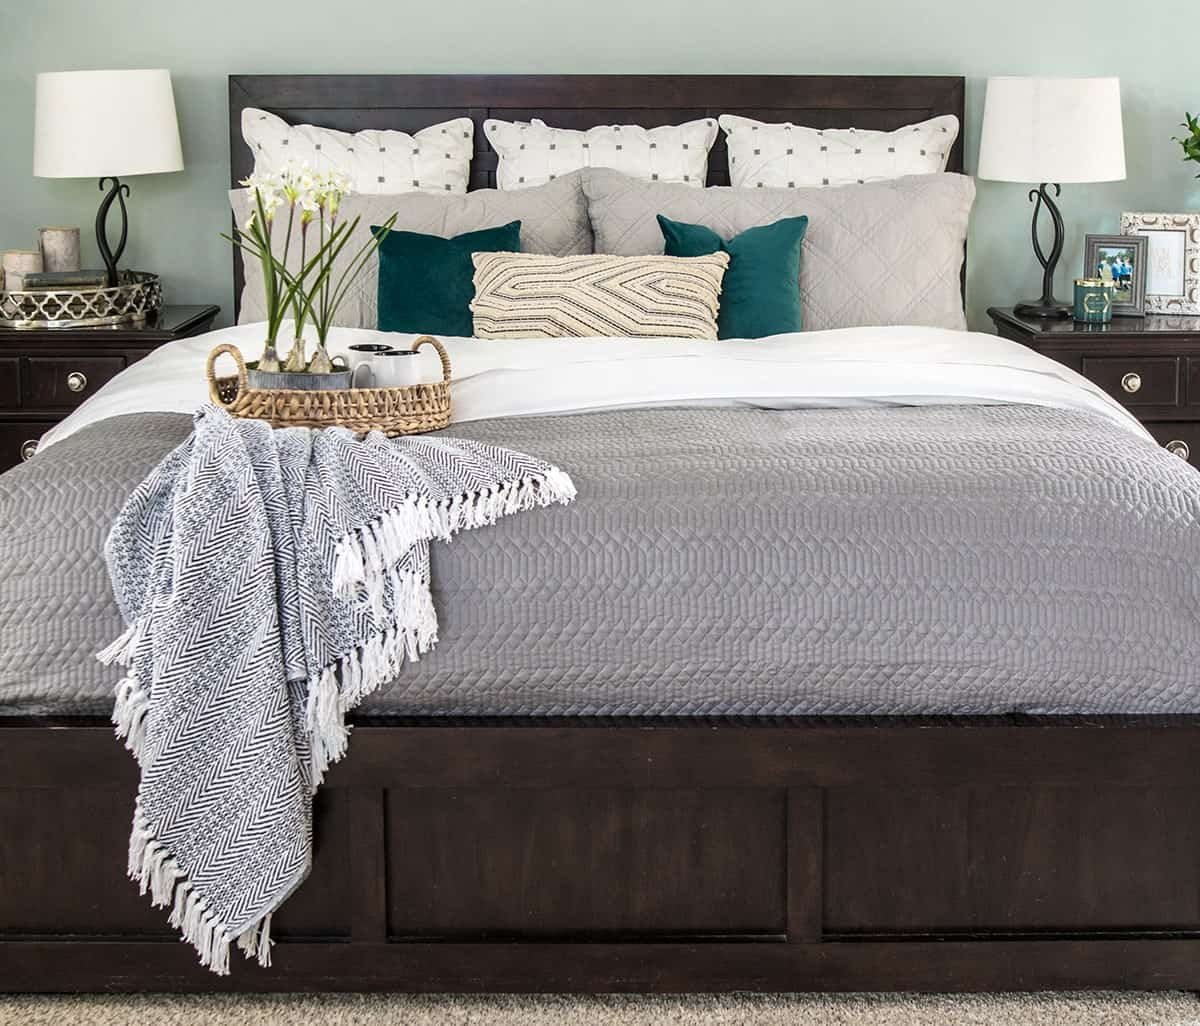 The easy way to Make a bed - Green and Gray color scheme